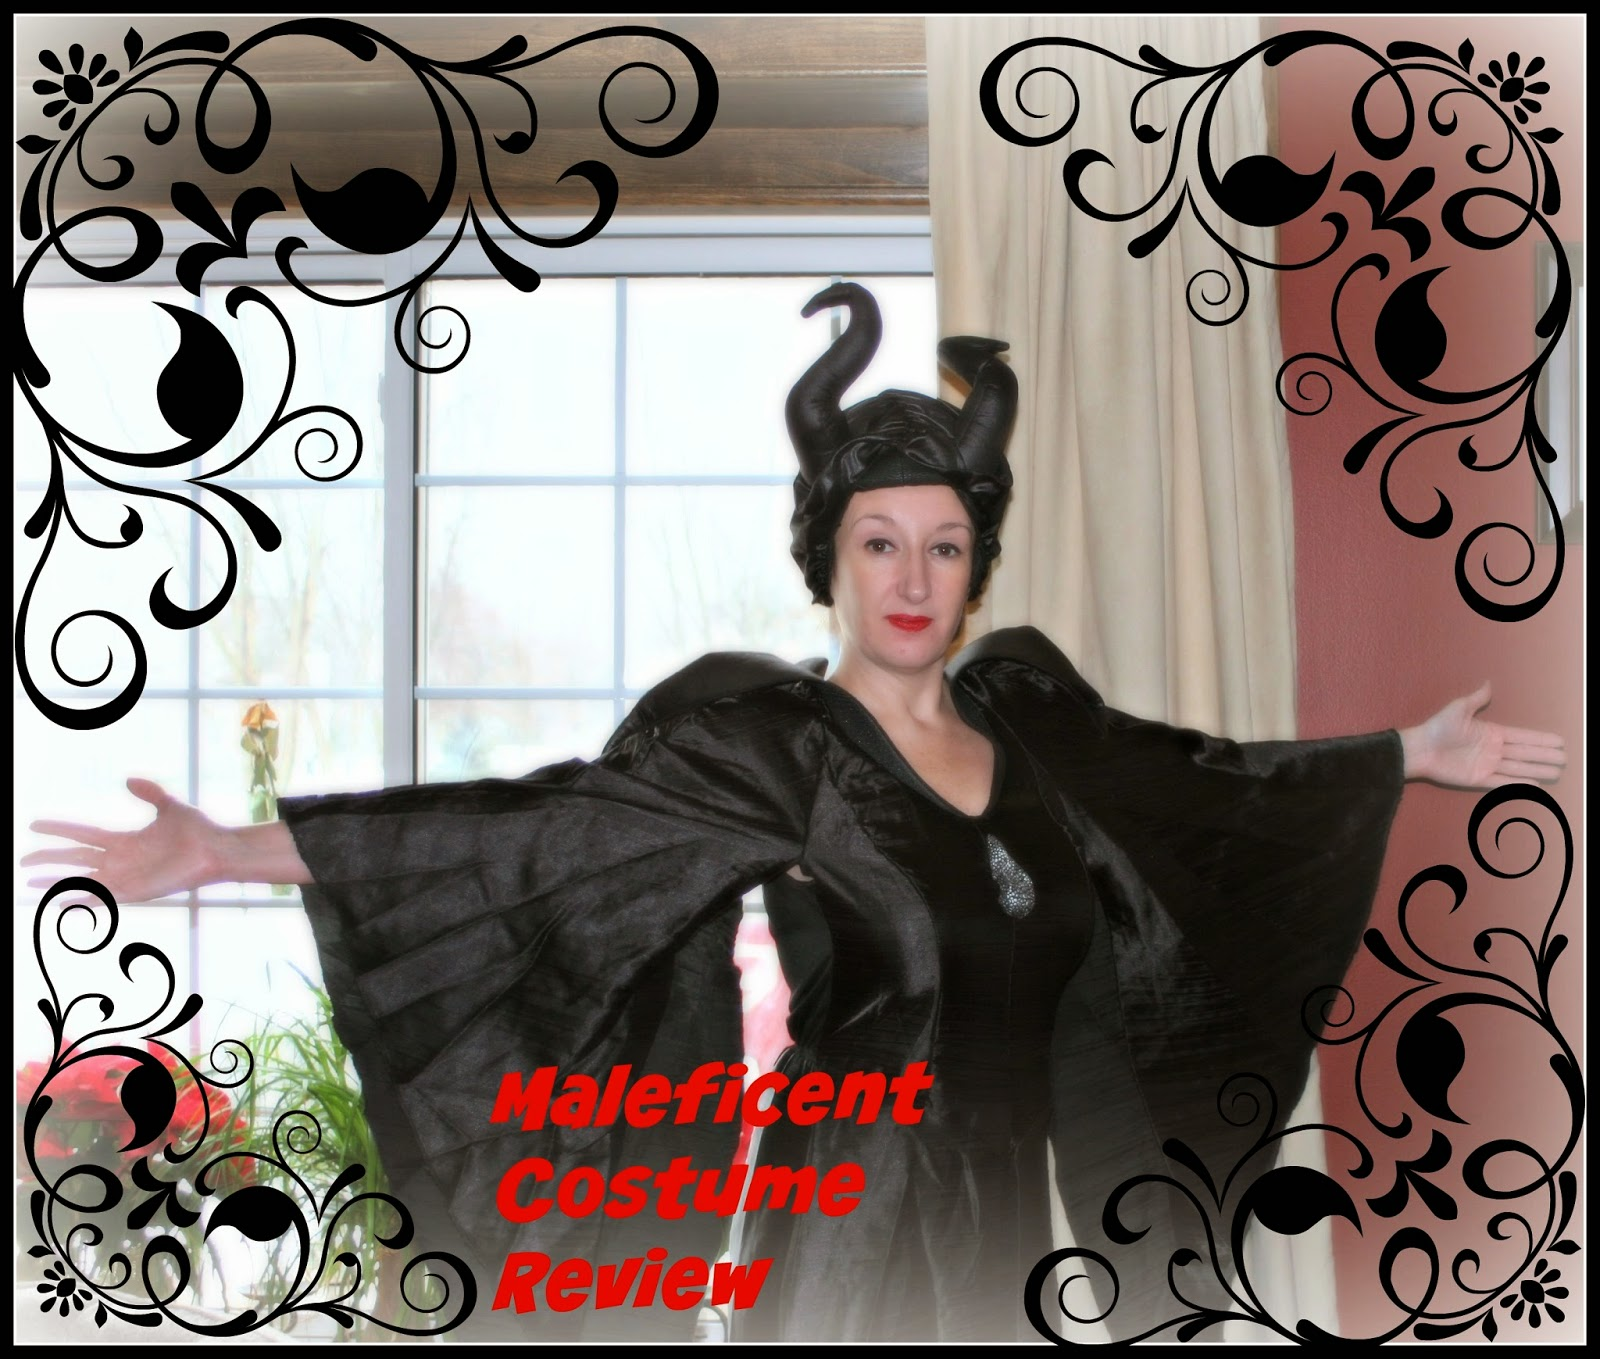 costume review, Maleficent, dress up